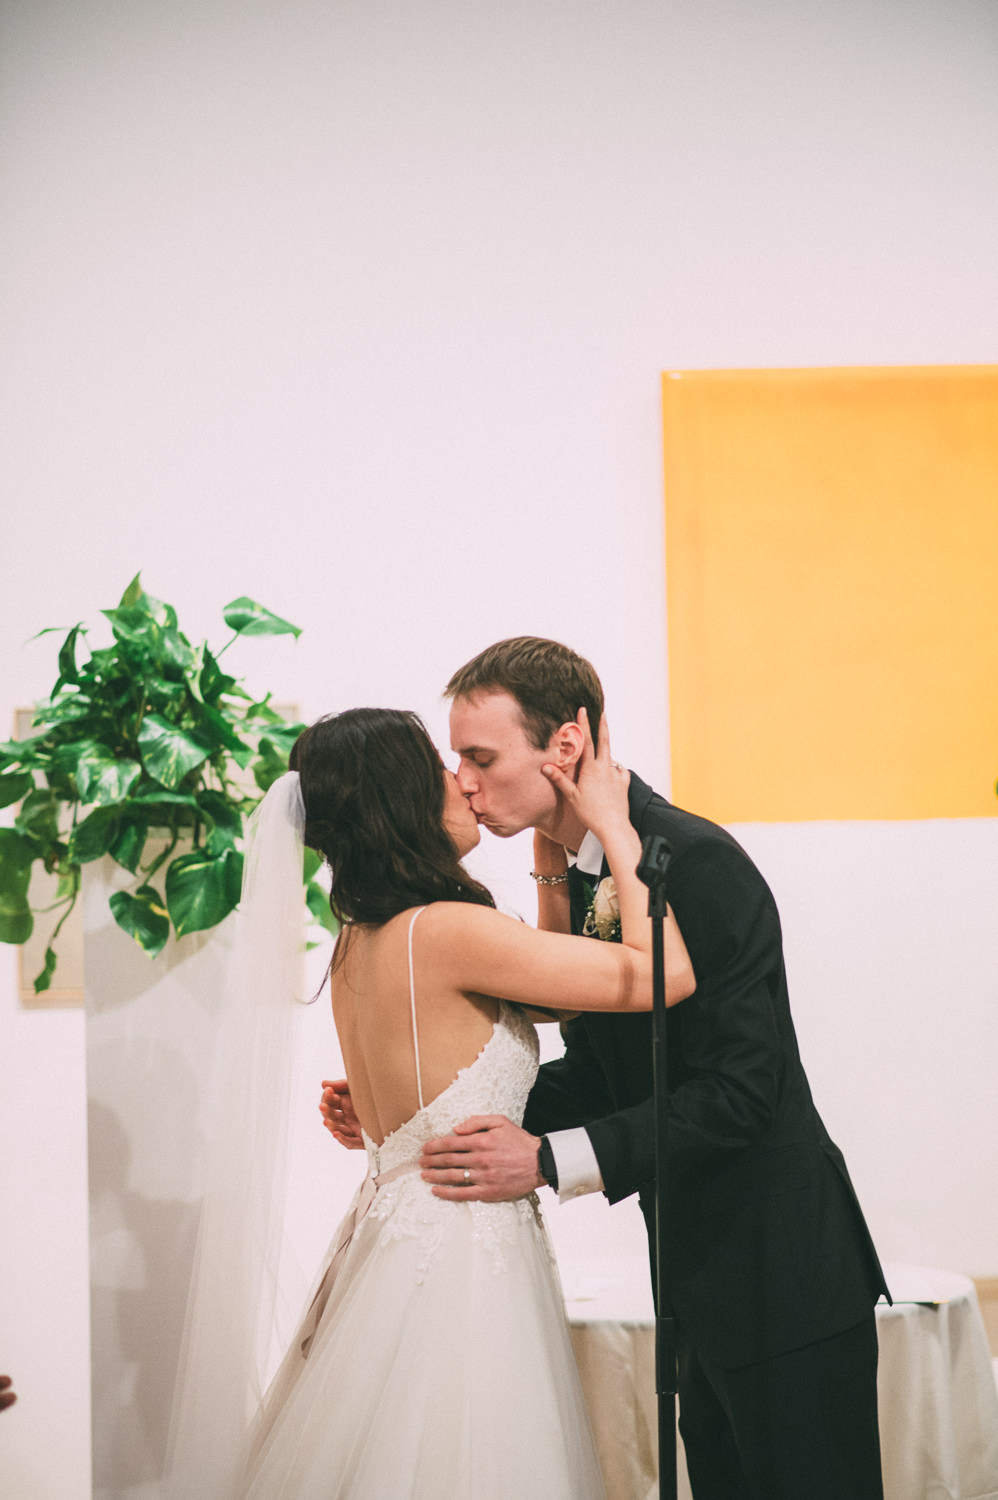 LagunaBeachArtMuseumWedding_by_TheImageIsFound.com_0099.jpg